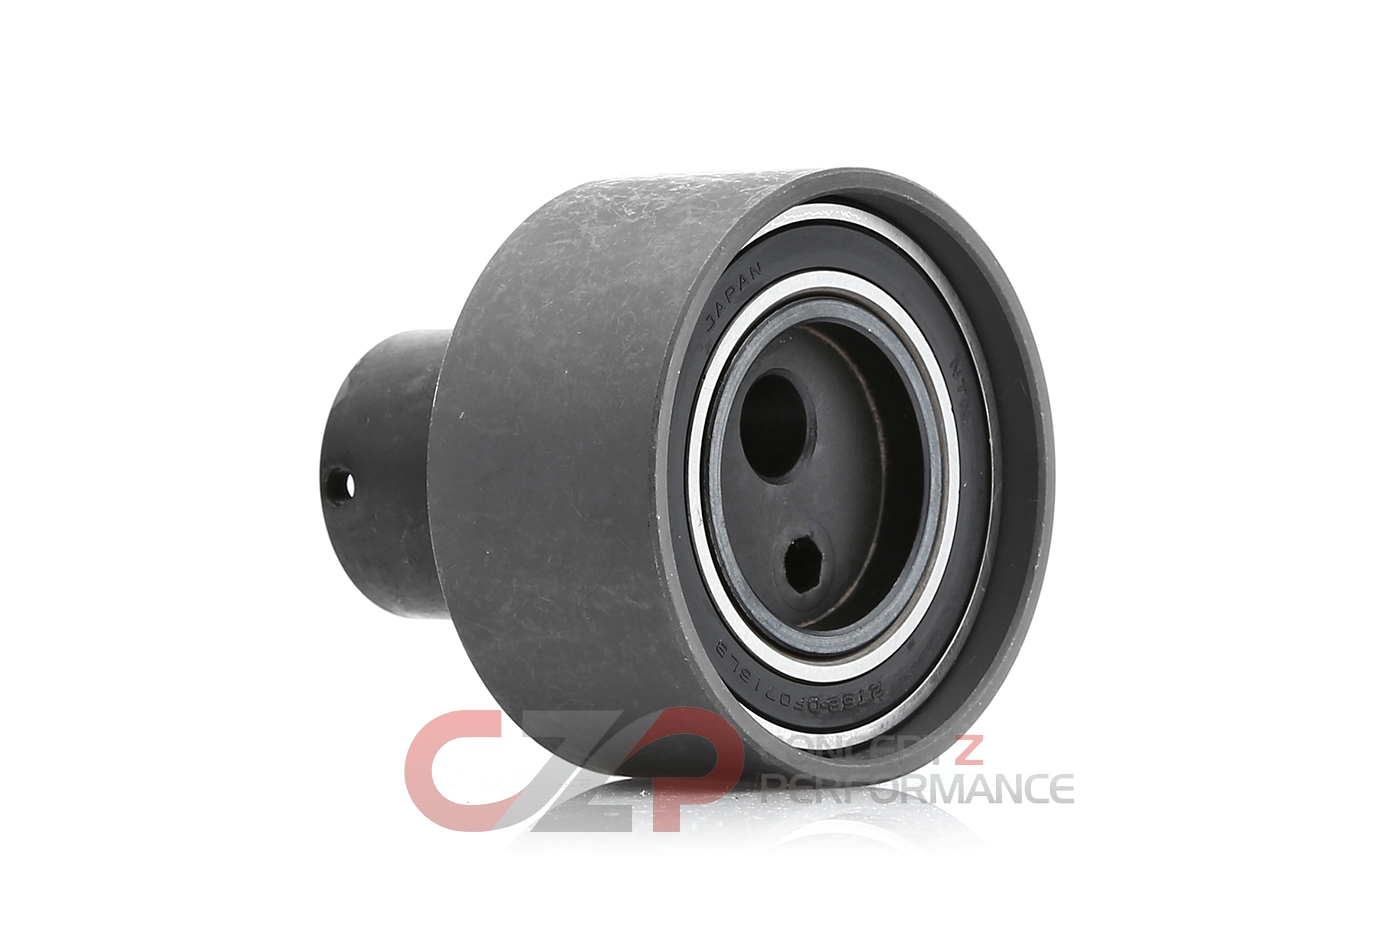 Nissan OEM 13070-42L00 Timing Belt Tensioner Pulley - RB26DETT / VG30E / VG33E